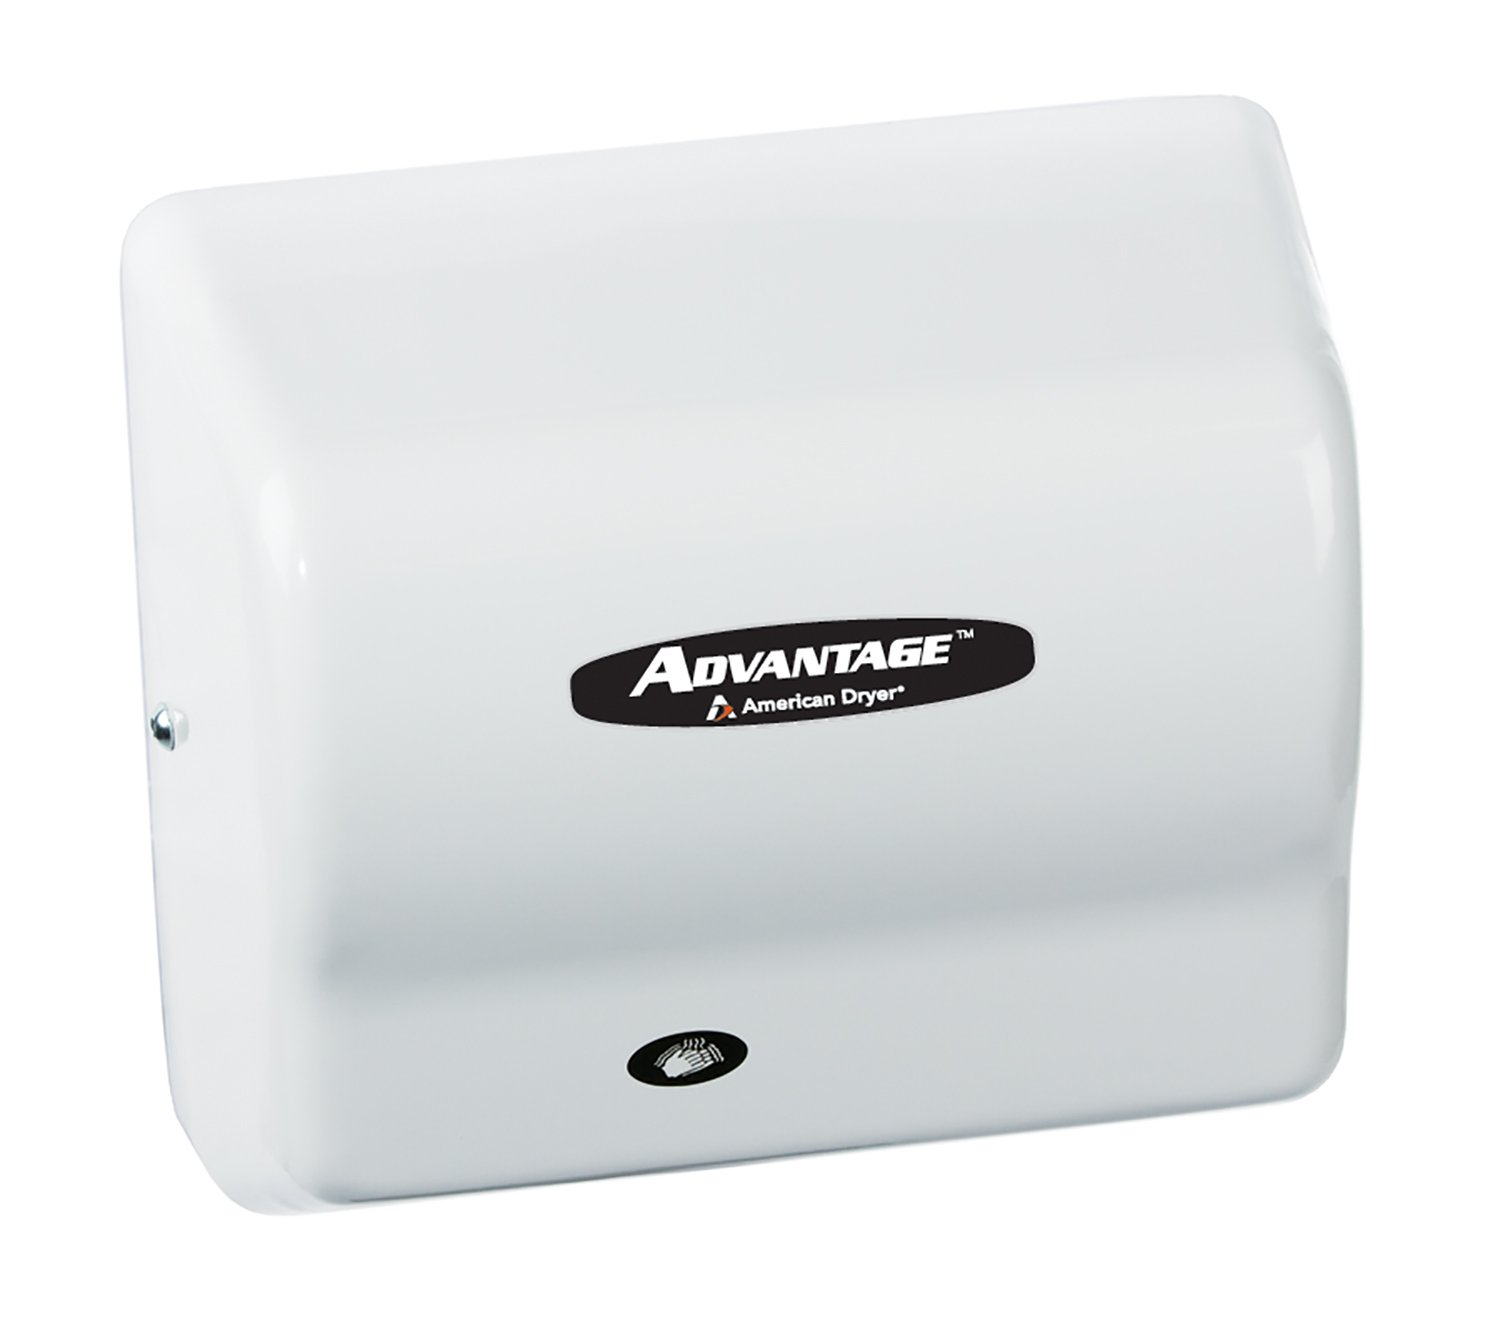 Image of American Dryer AD90 Advantage ABS Standard Automatic Hand Dryer, 1/8 HP Motor, 100-240V, 5-5/8' Length x 10-1/8' Width x 9-3/8' Height, White Hand Dryers